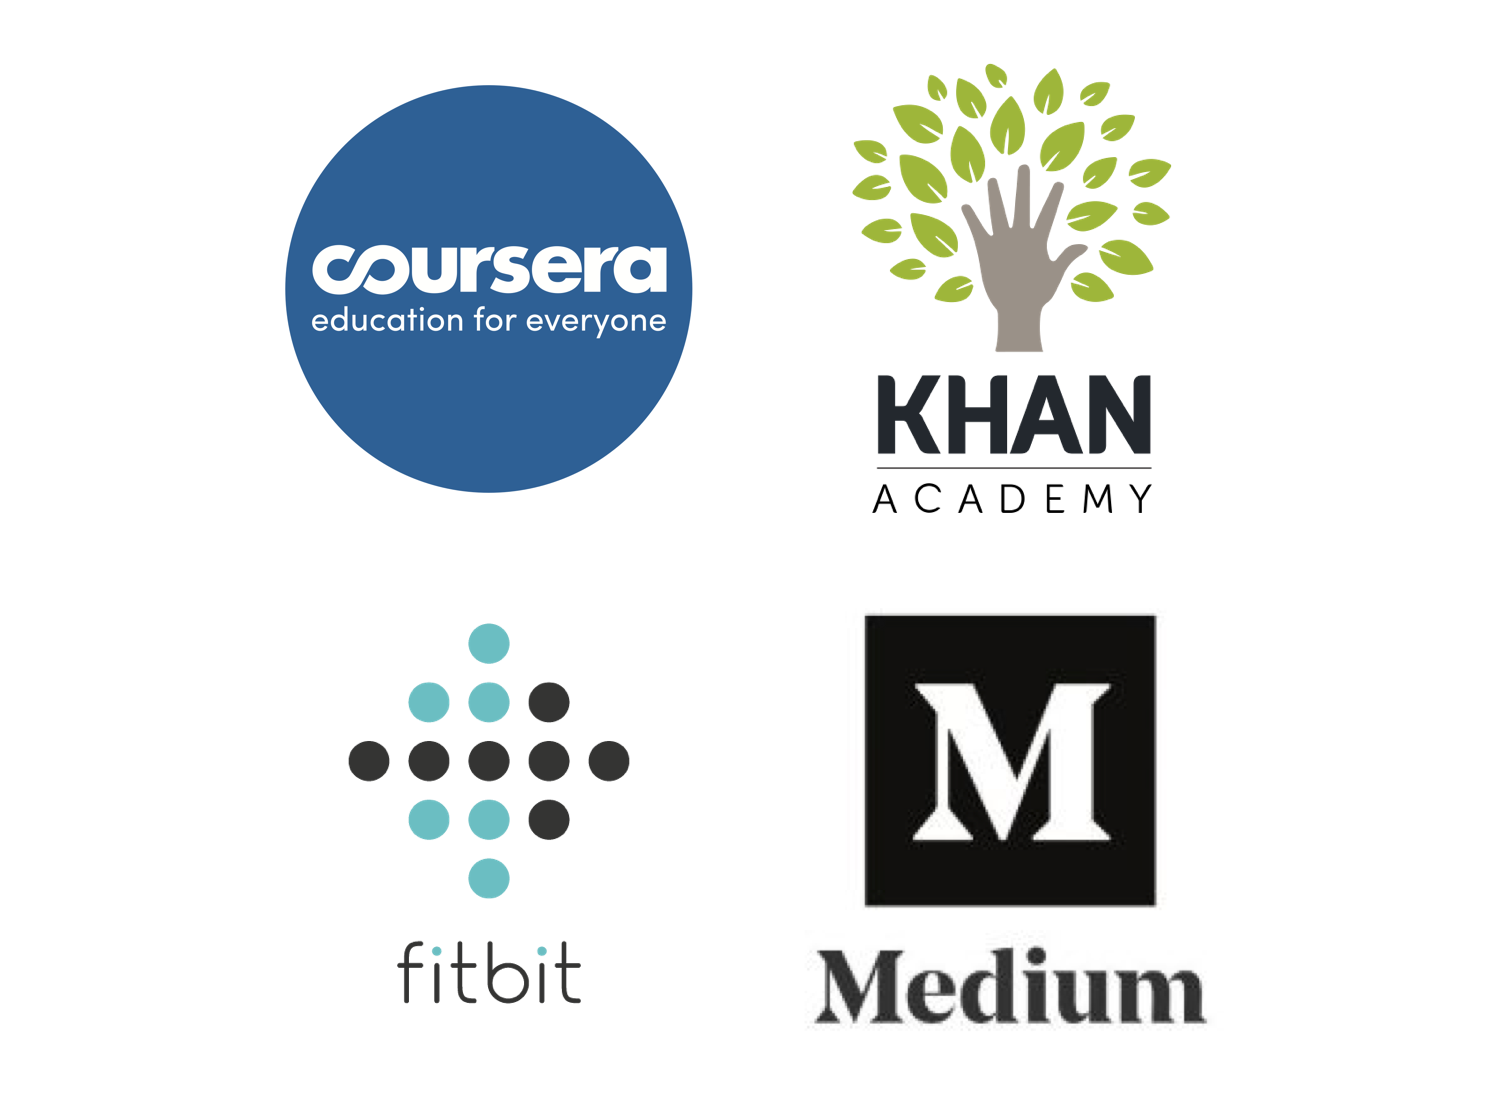 2) COMPETITOR AND COMPARATOR ANALYSIS  I looked at the features and interactions in other online learning platforms, as well as effective motivators (Fitbit) and longreads (Medium).